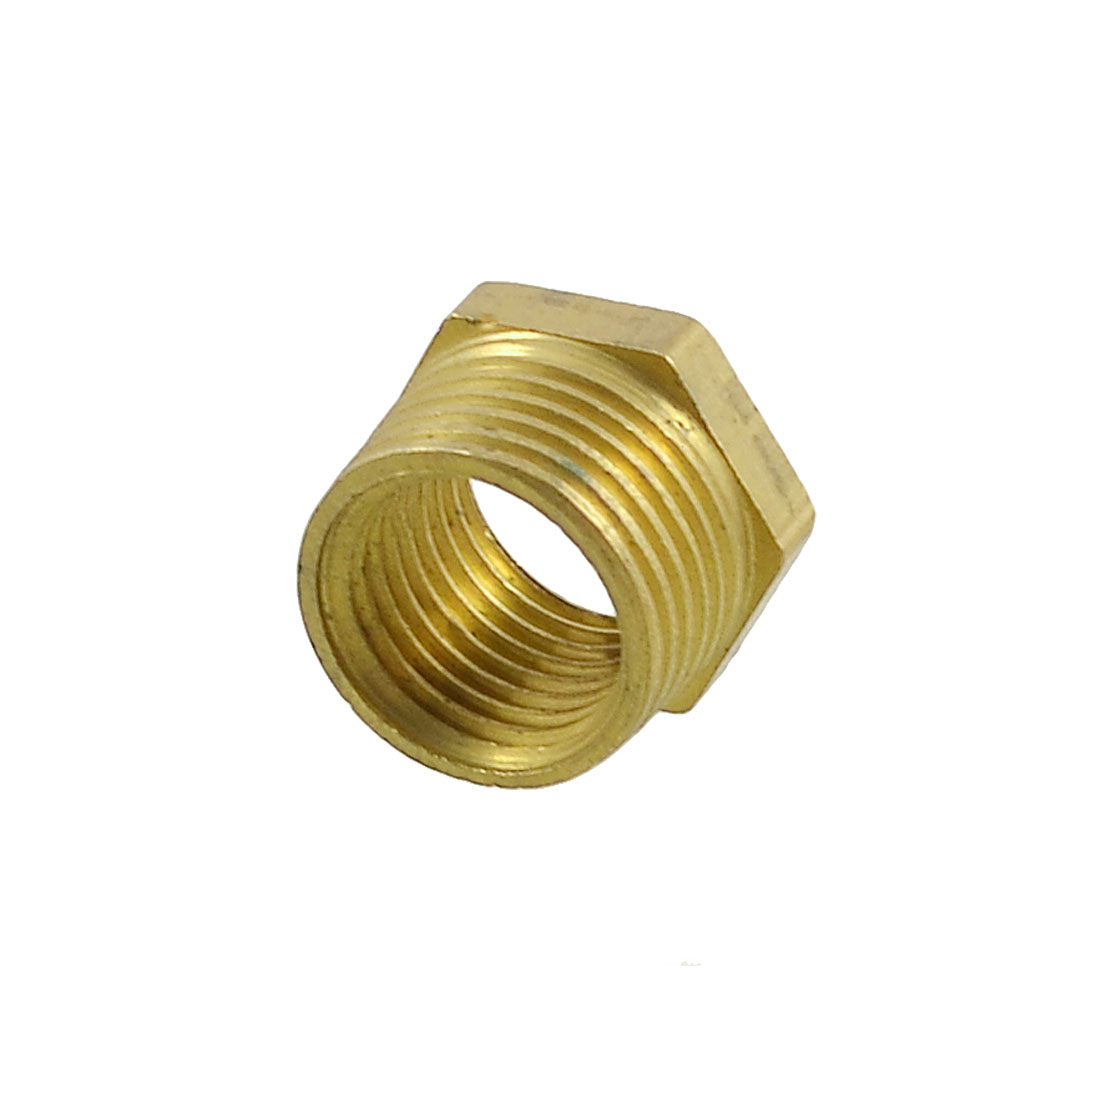 Pipe Reducer 3/8BSP x 1/4BSP Thread Brass Hex Bushing Connector